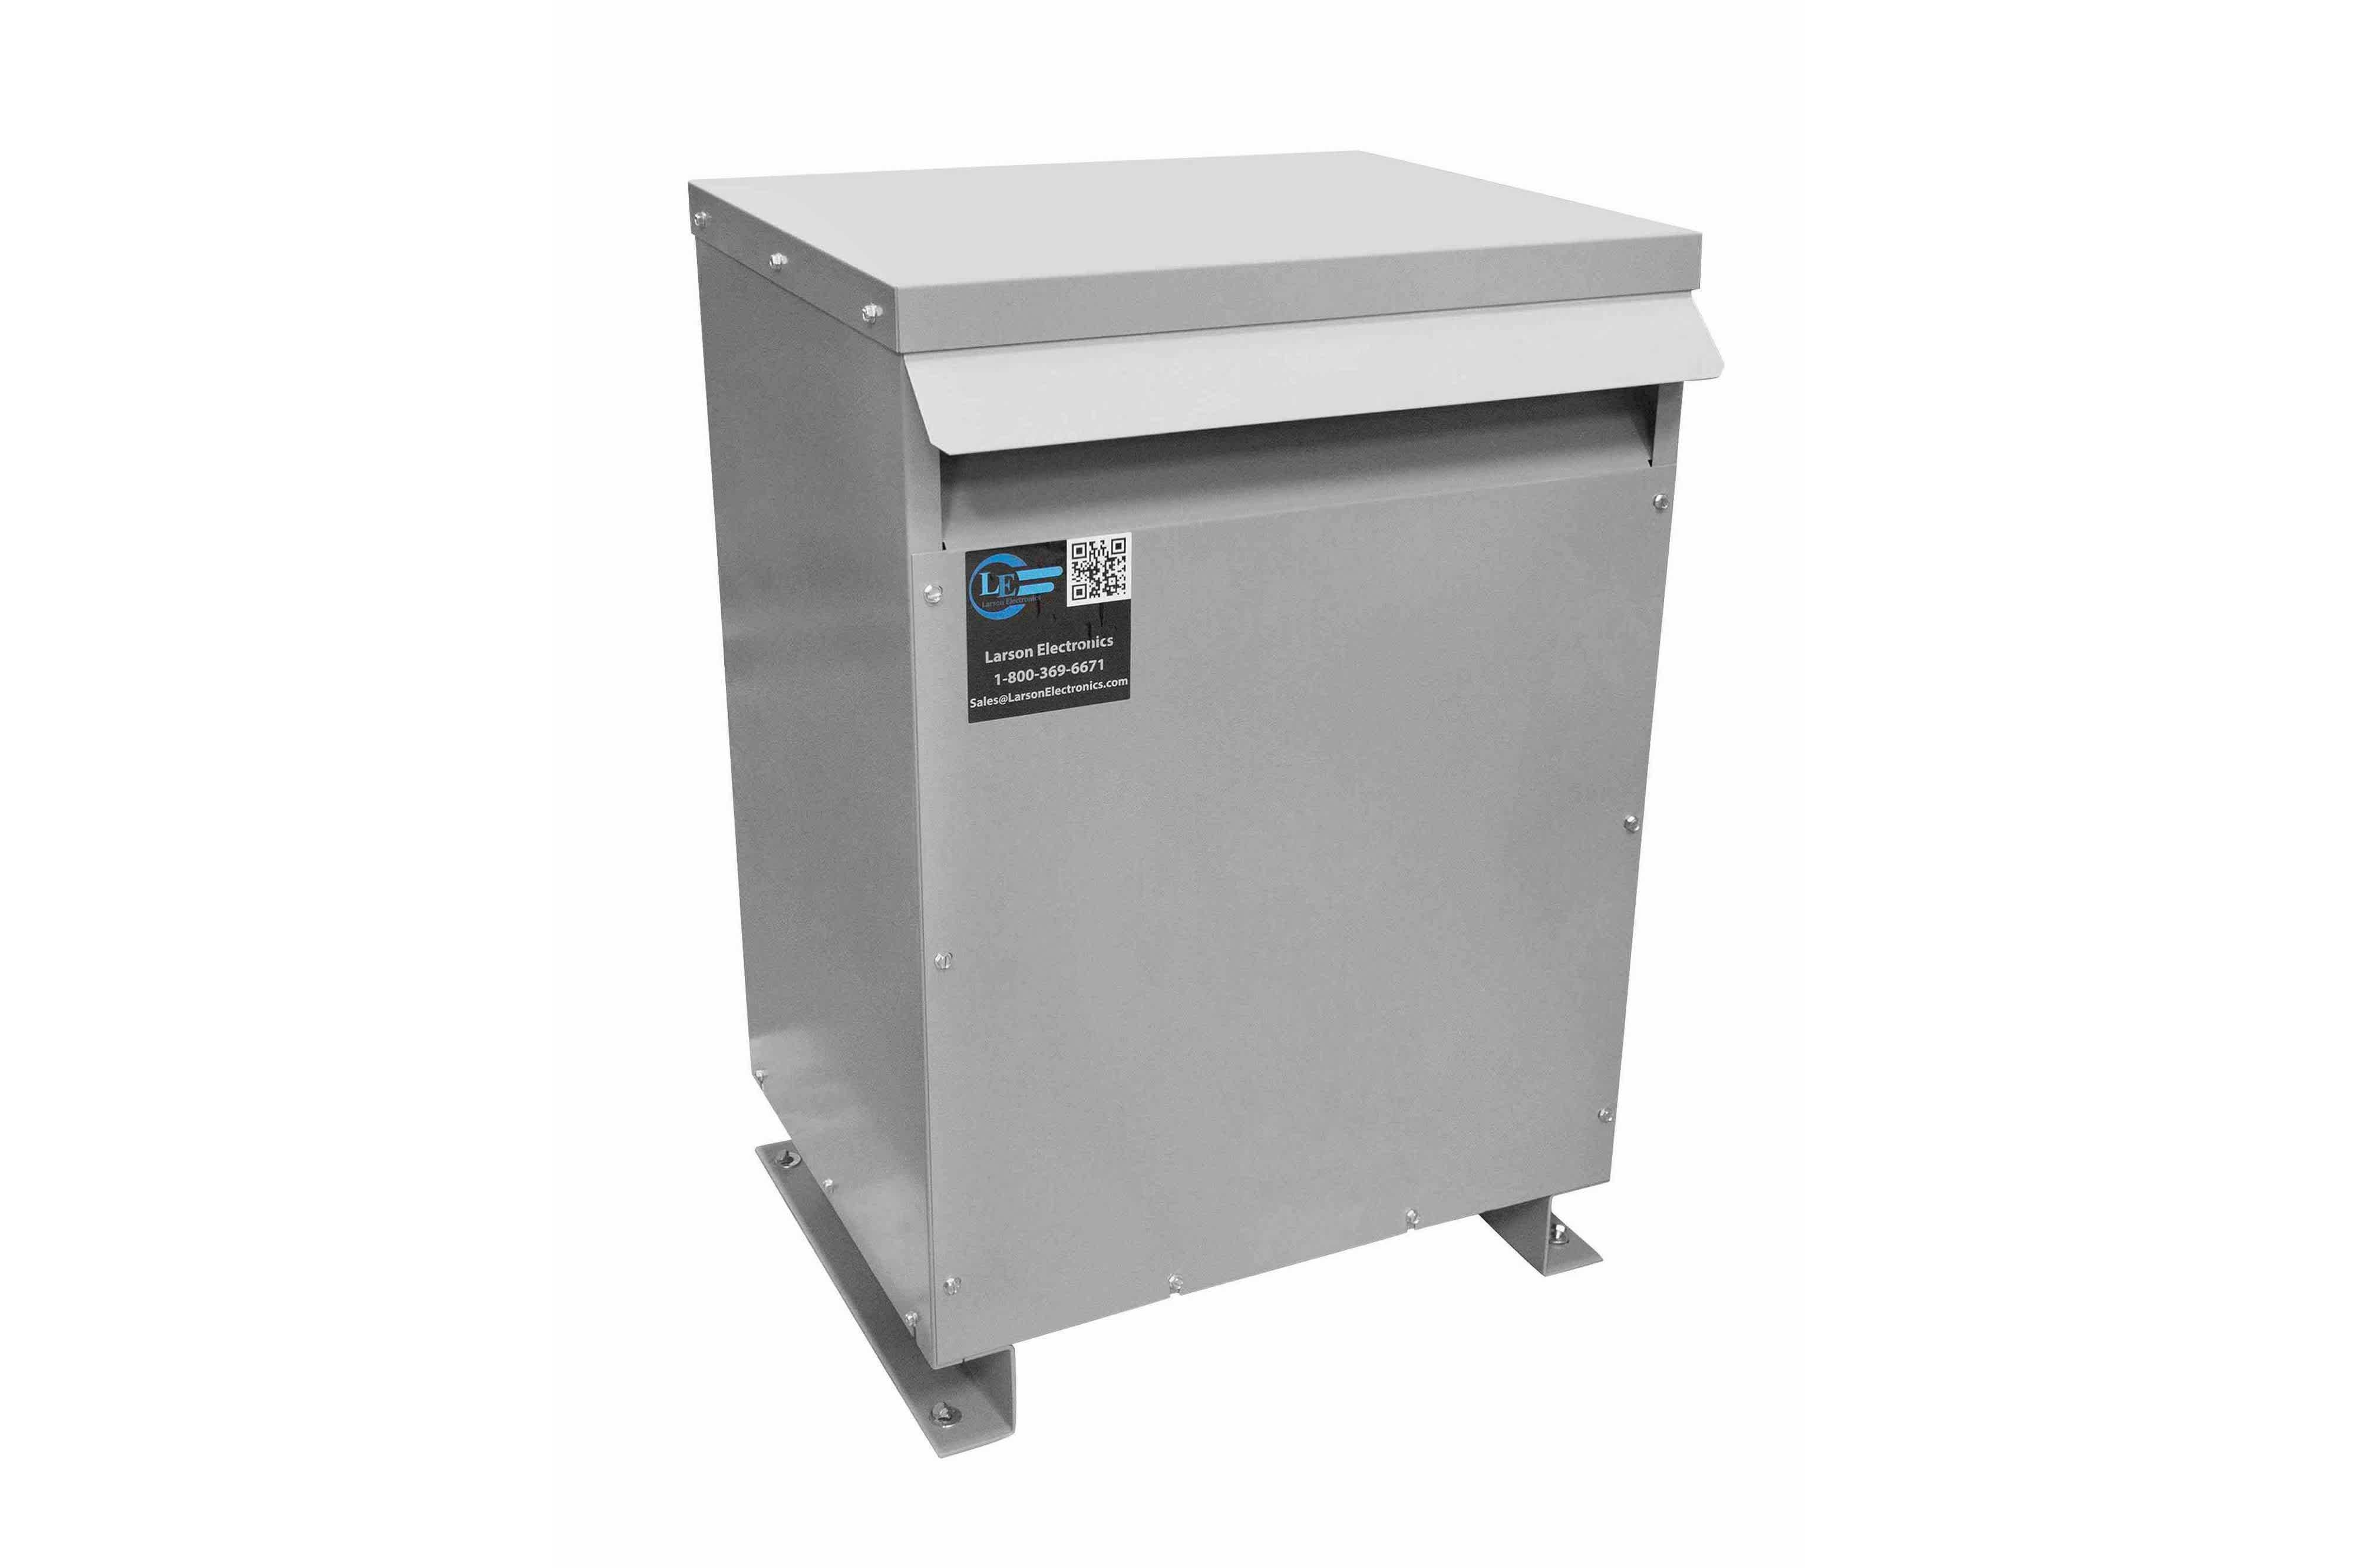 30 kVA 3PH DOE Transformer, 415V Delta Primary, 240V/120 Delta Secondary, N3R, Ventilated, 60 Hz